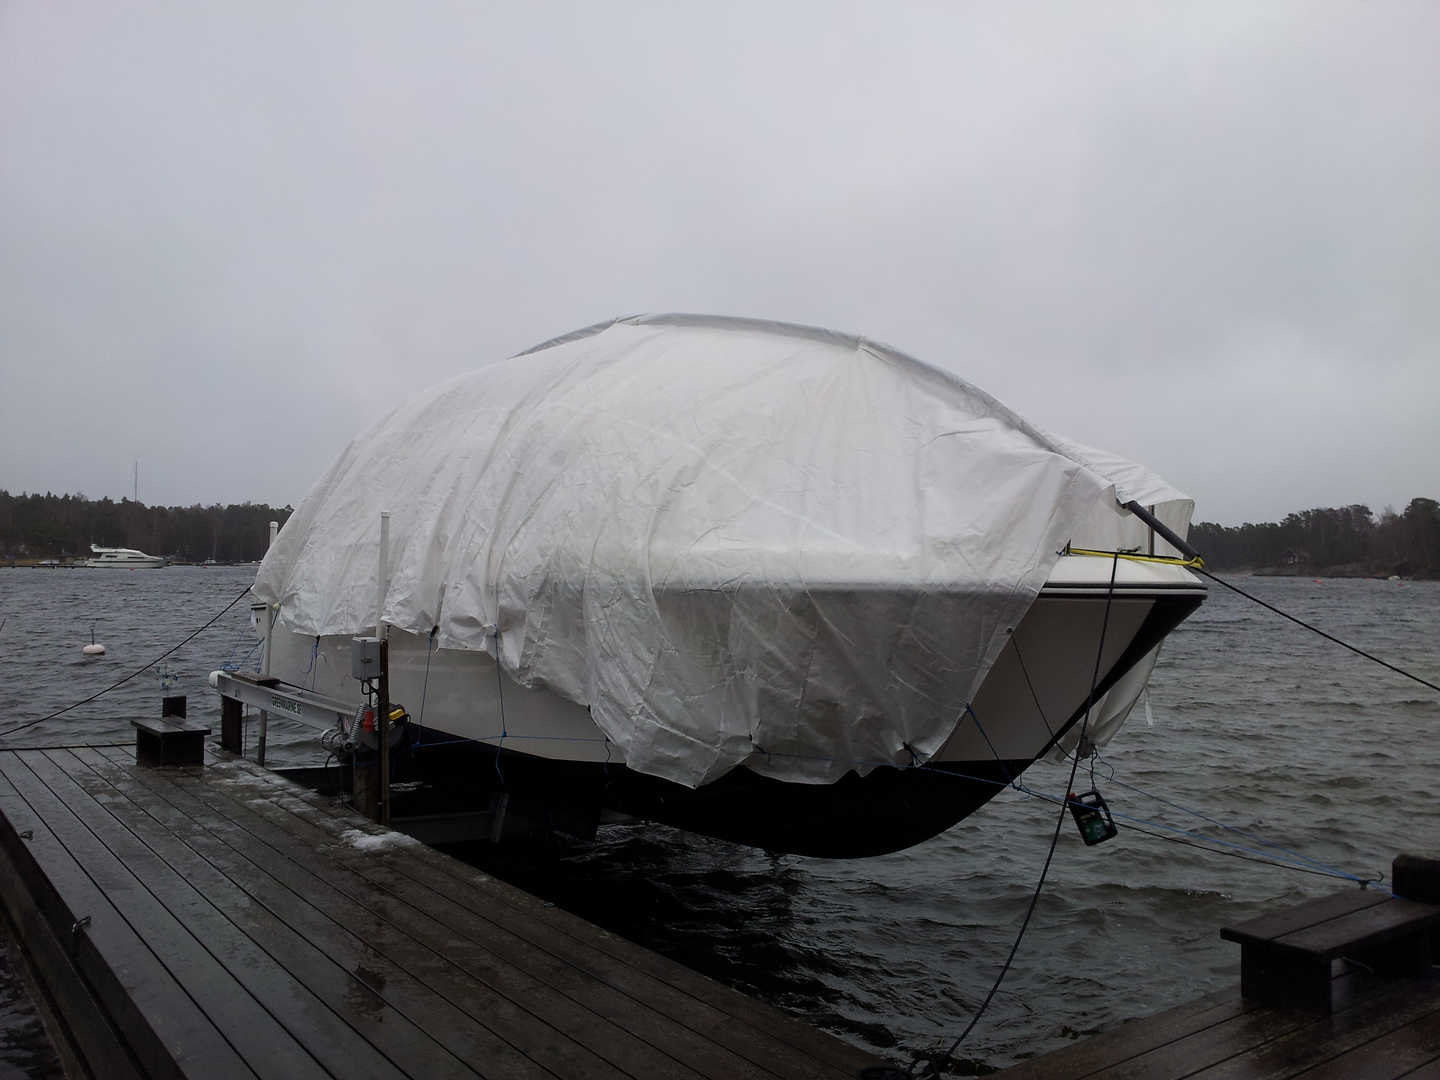 EASYTEC BOAT COVER ON WATER